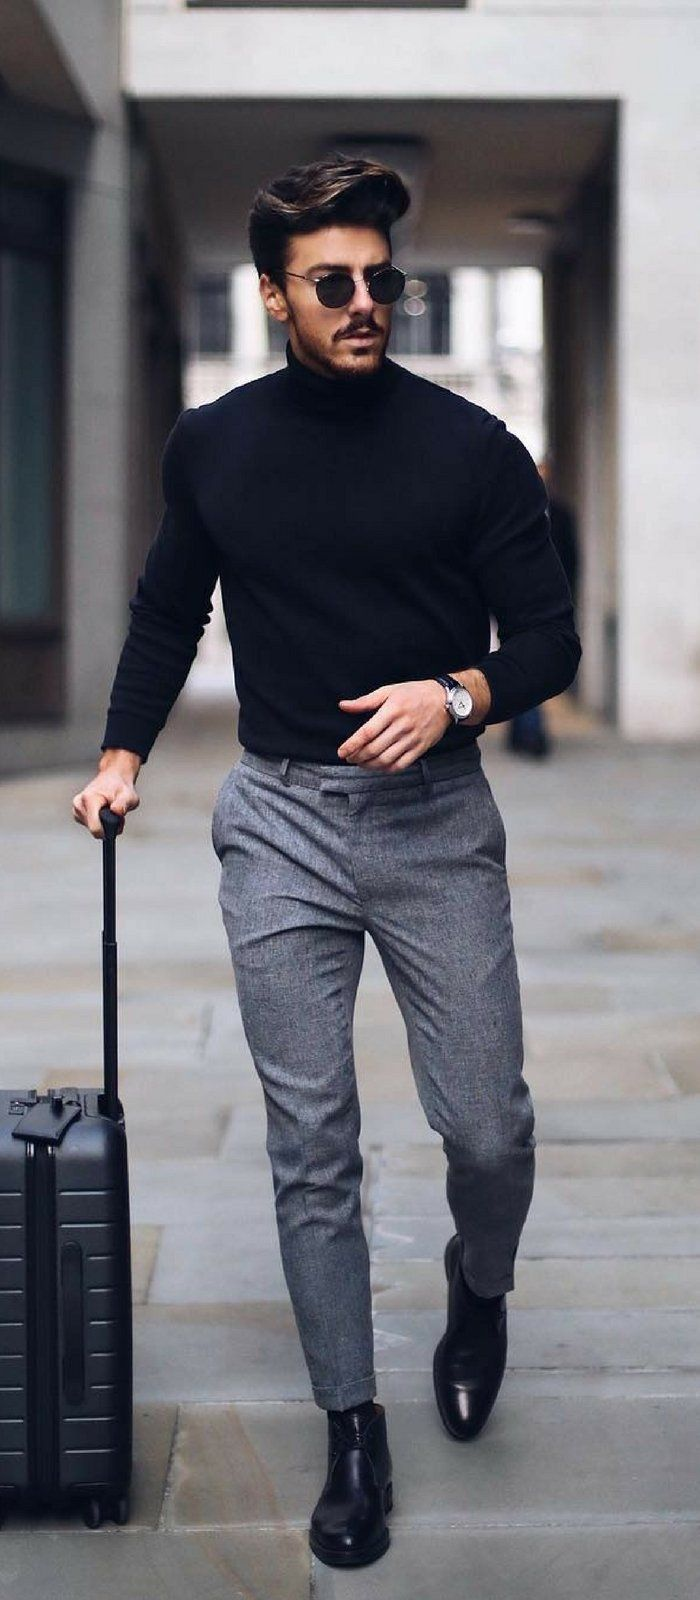 9 Beyond Cool Street Styles Looks For Men – LIFESTYLE BY PS